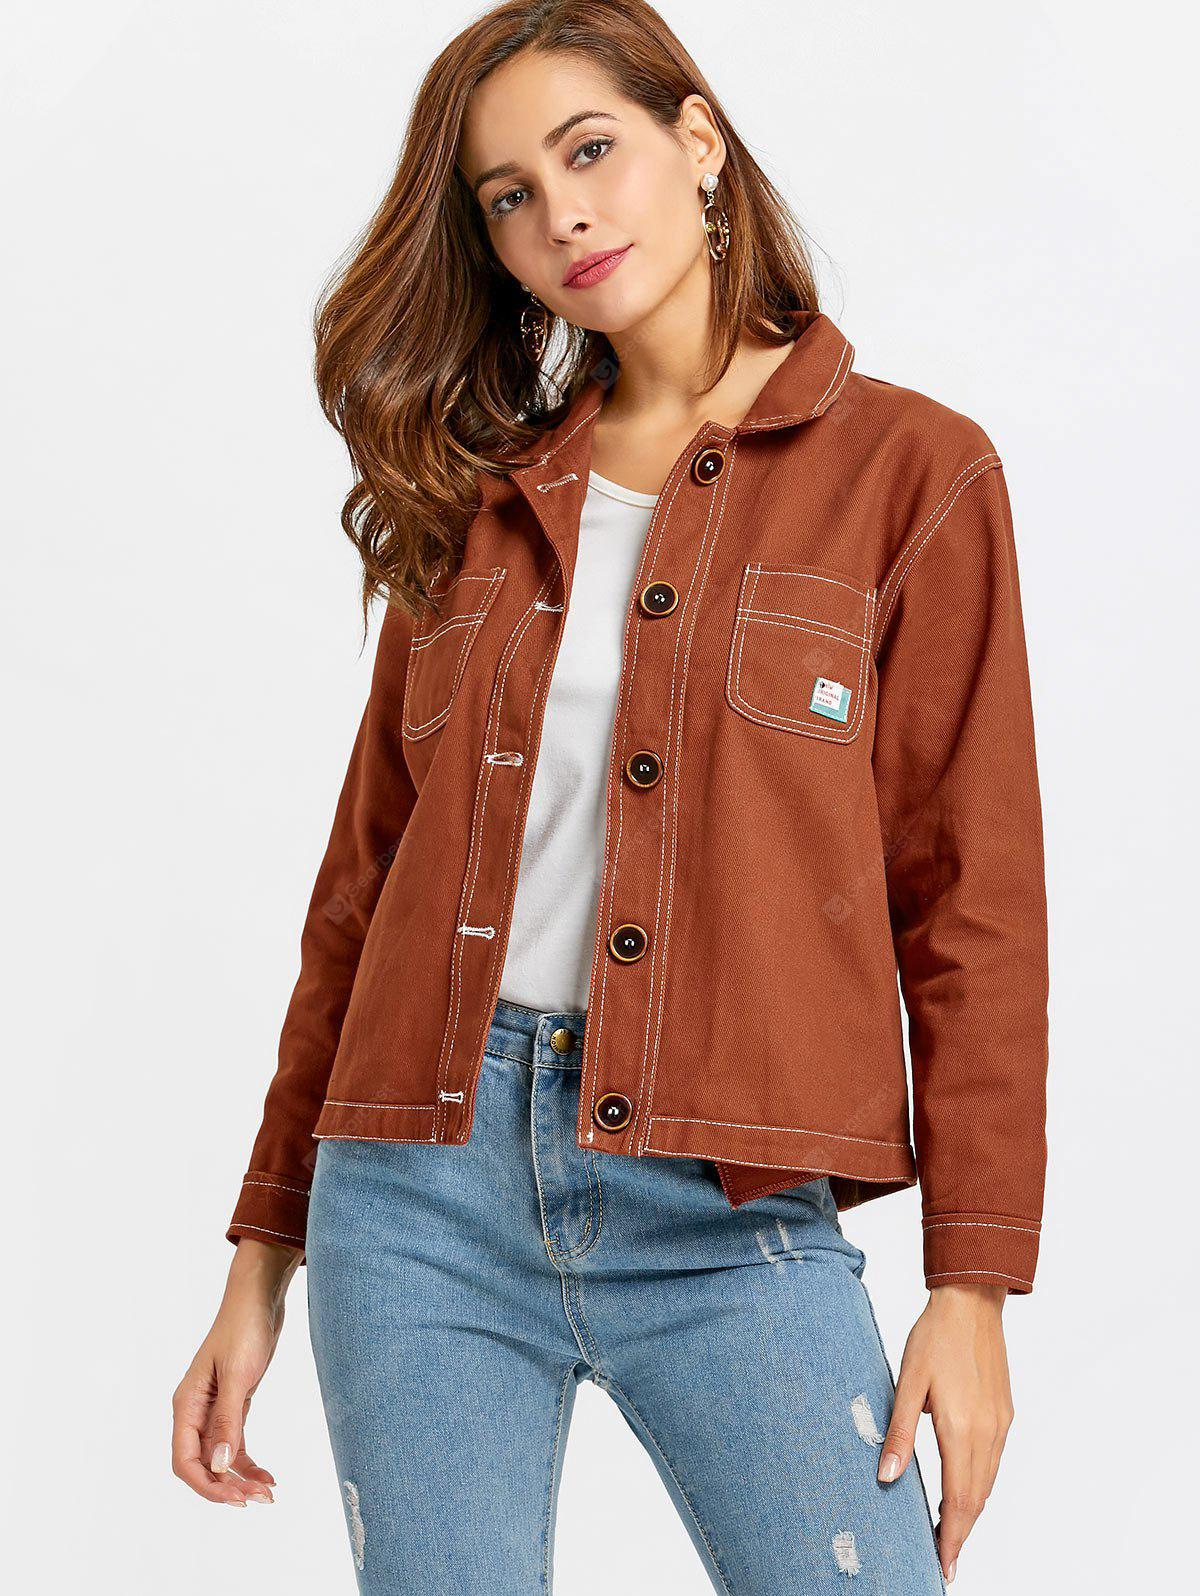 Button Up Jacket with Pockets